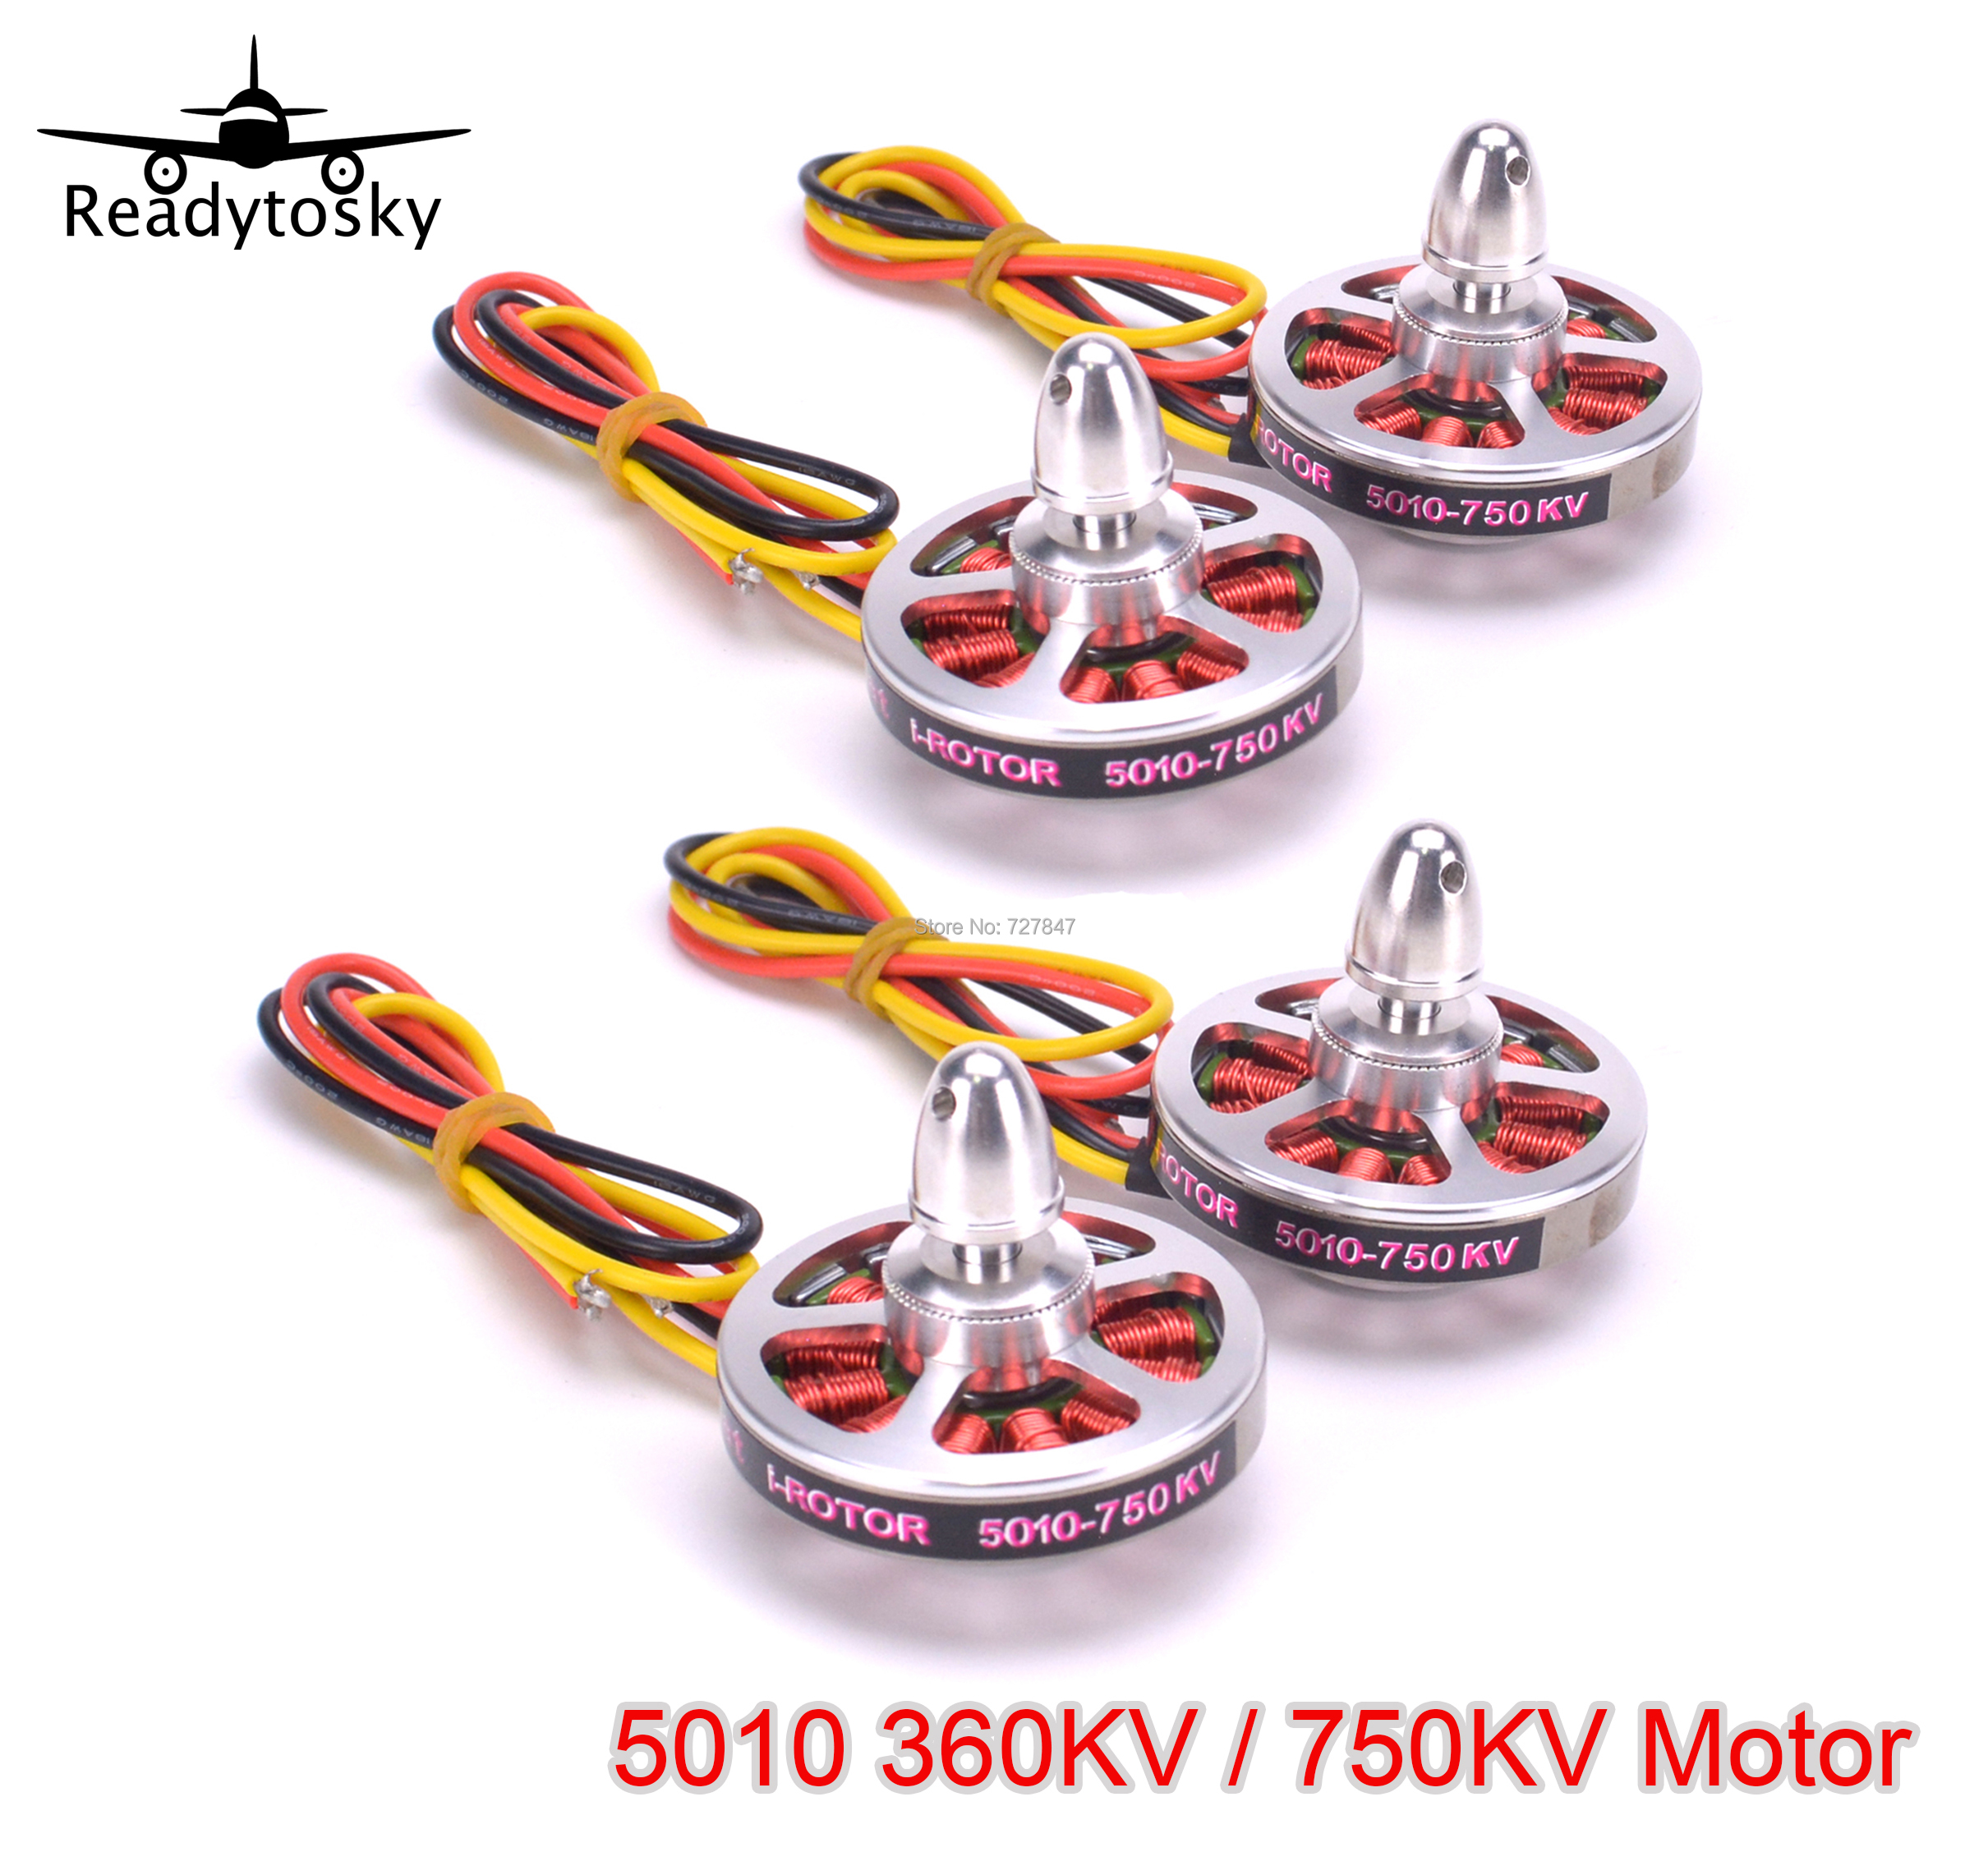 NEW <font><b>5010</b></font> 360KV / 750KV High Torque Brushless Motors For ZD850 ZD550 ZD680 MultiCopter QuadCopter image